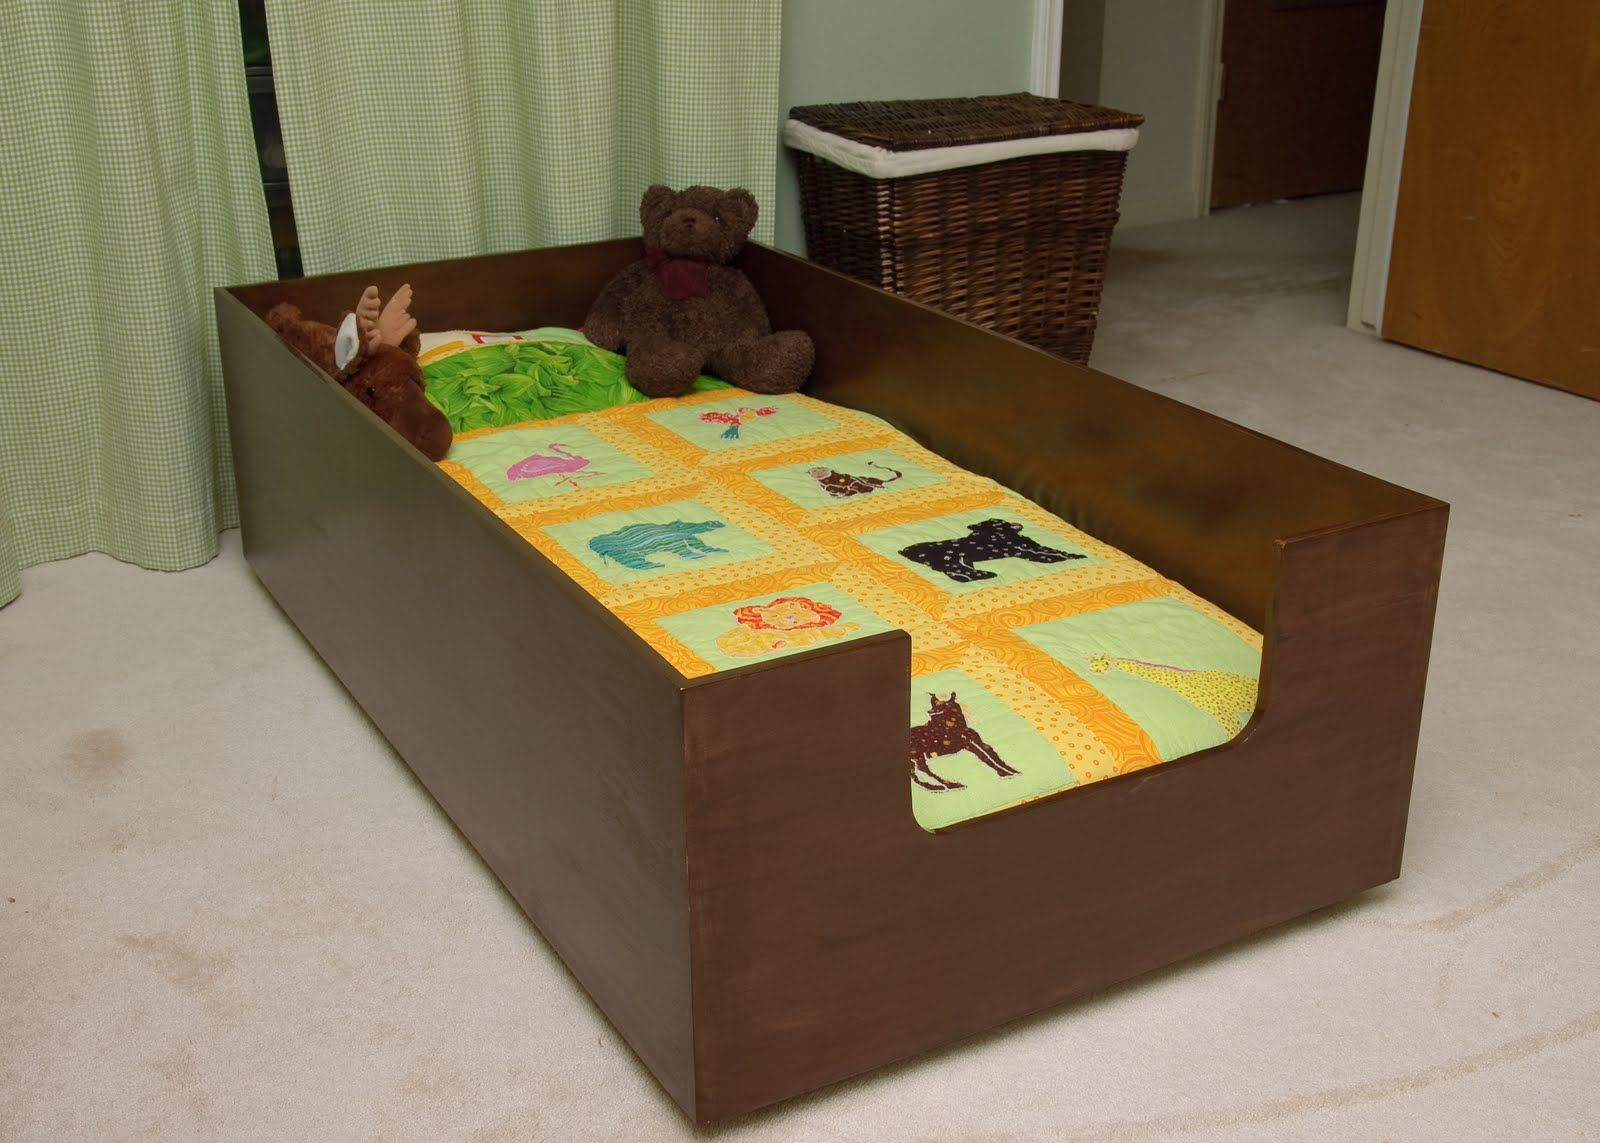 Best Diy Toddler Bed So He Can T Roll Out Diy Toddler Bed 400 x 300